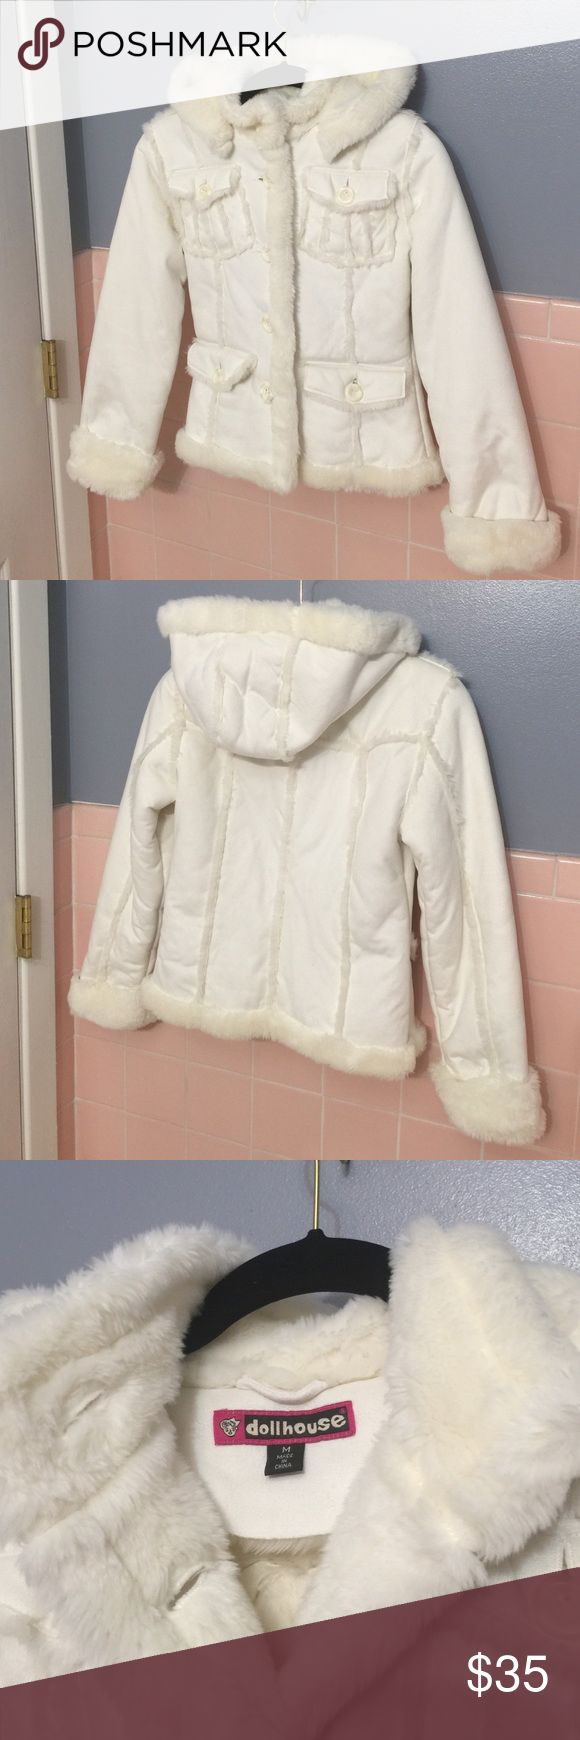 Dollhouse White Faux Fur Jacket Dollhouse White Faux Fur Jacket,,This is absolutely adorable ❤️ Fur inside,Faux leather outside.So so cute 😃 Dollhouse  Jackets & Coats